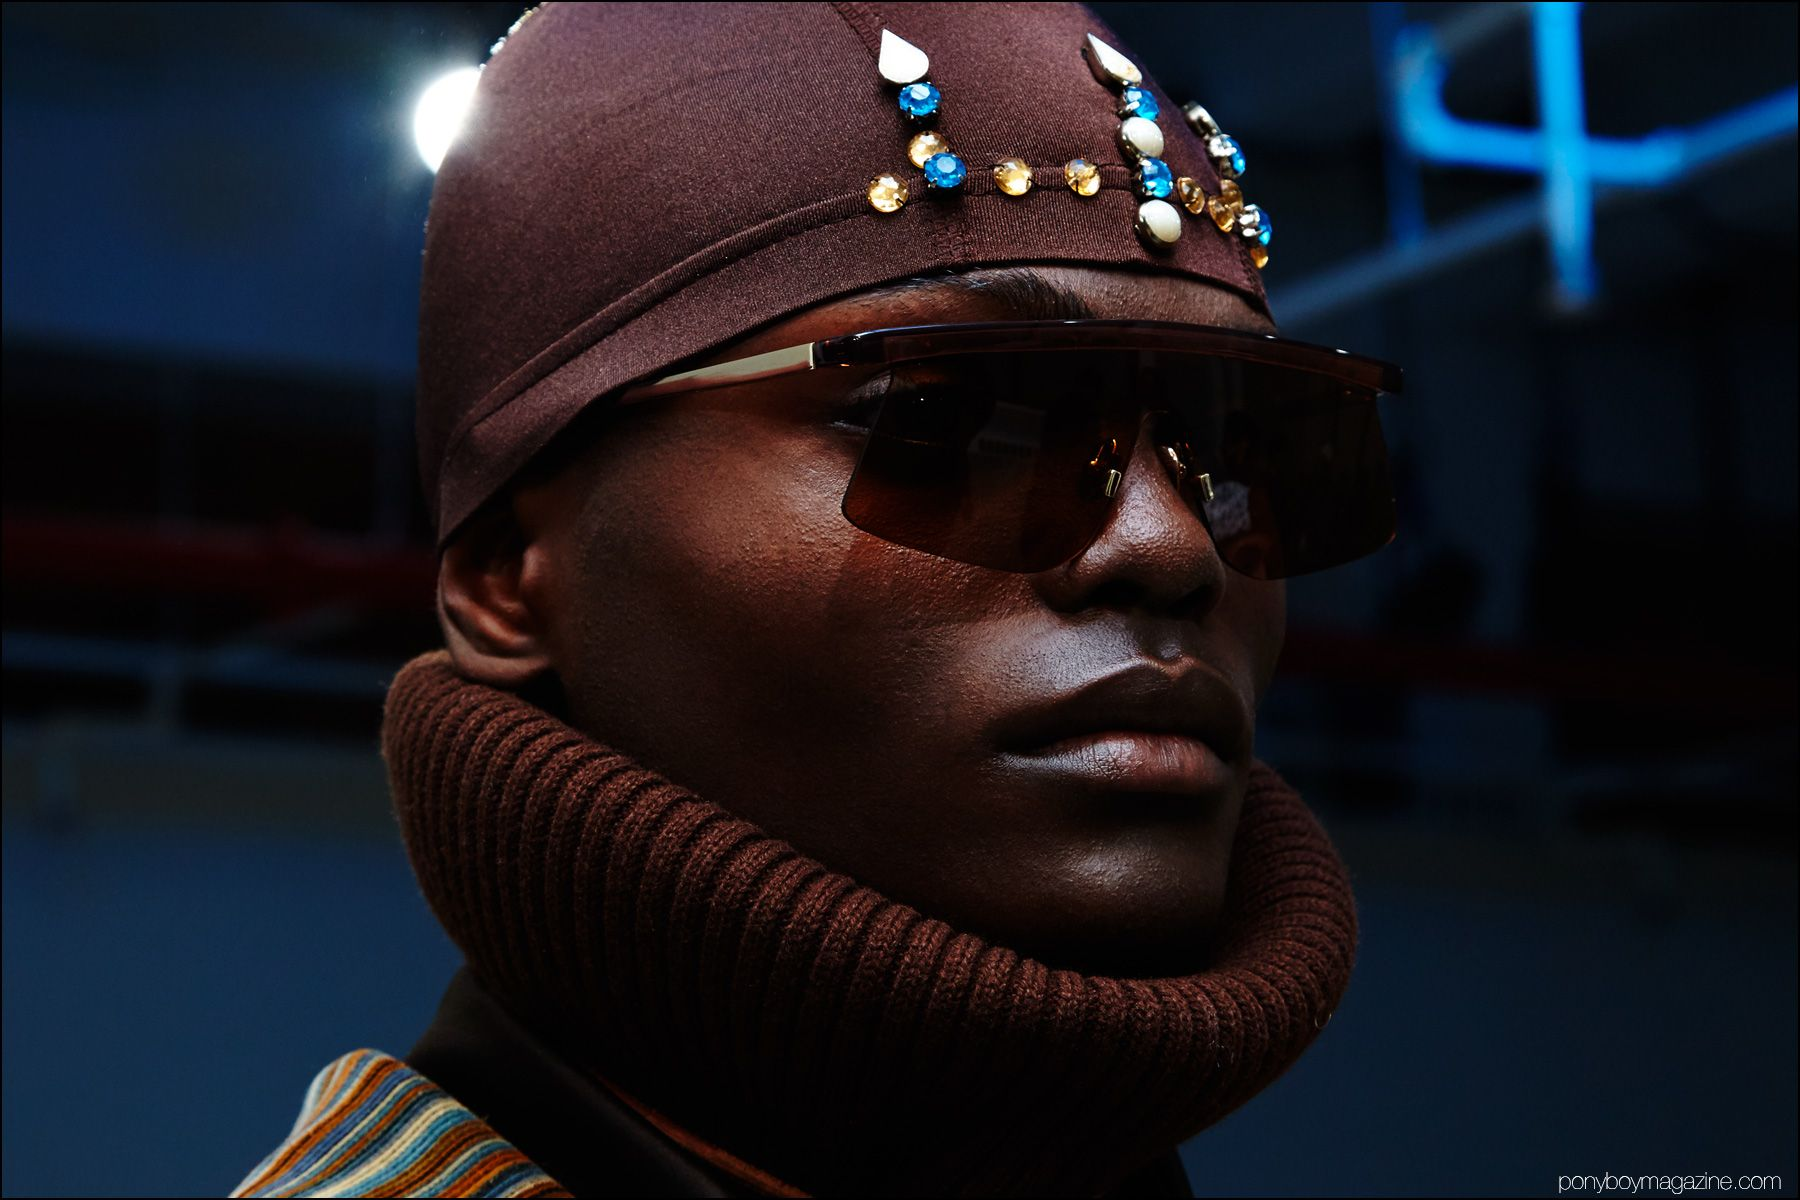 Embellished headwear photographed at Gypsy Sport F/W16 menswear presentation by Alexander Thompson for Ponyboy magazine NY.